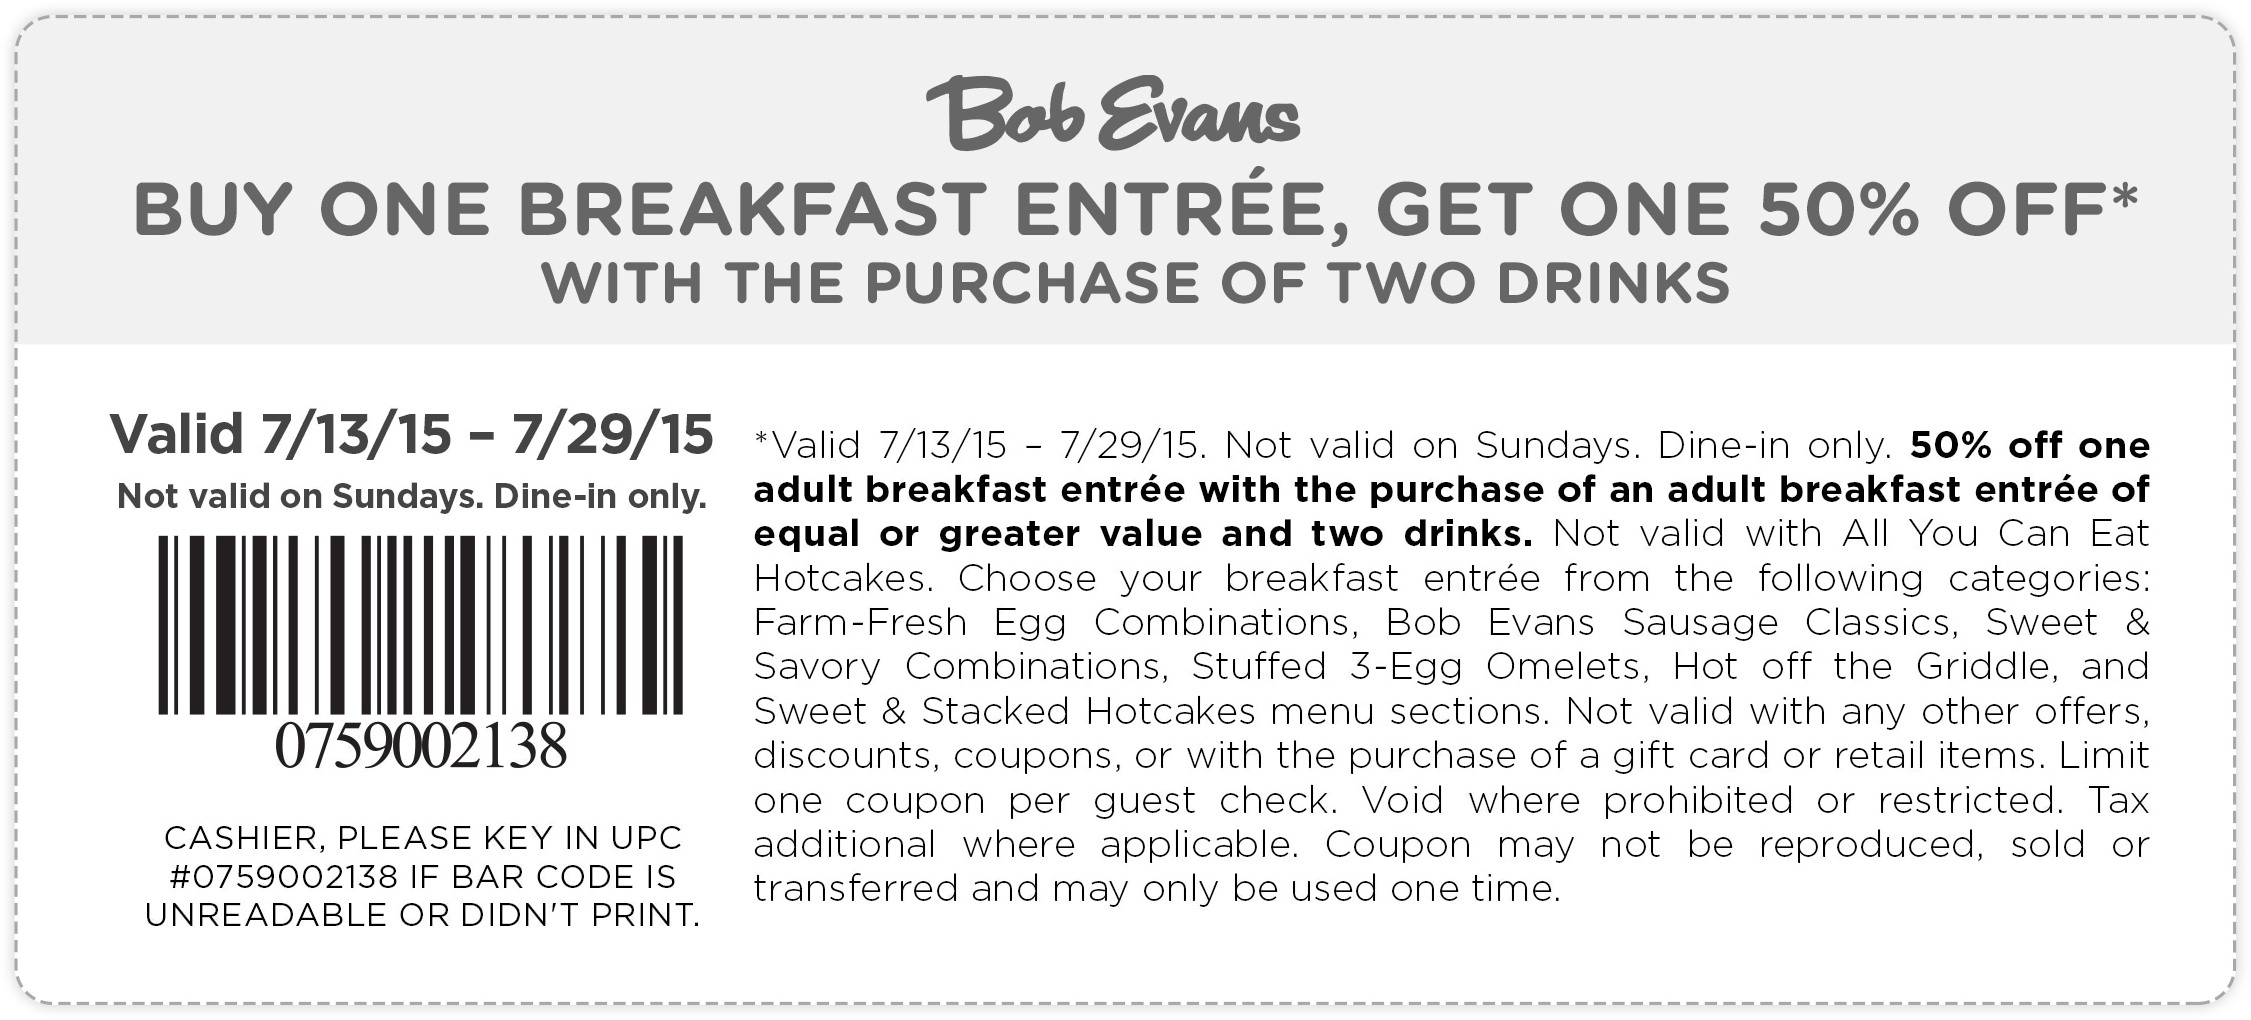 Bob Evans Coupon February 2019 Second breakfast entree 50% off at Bob Evans